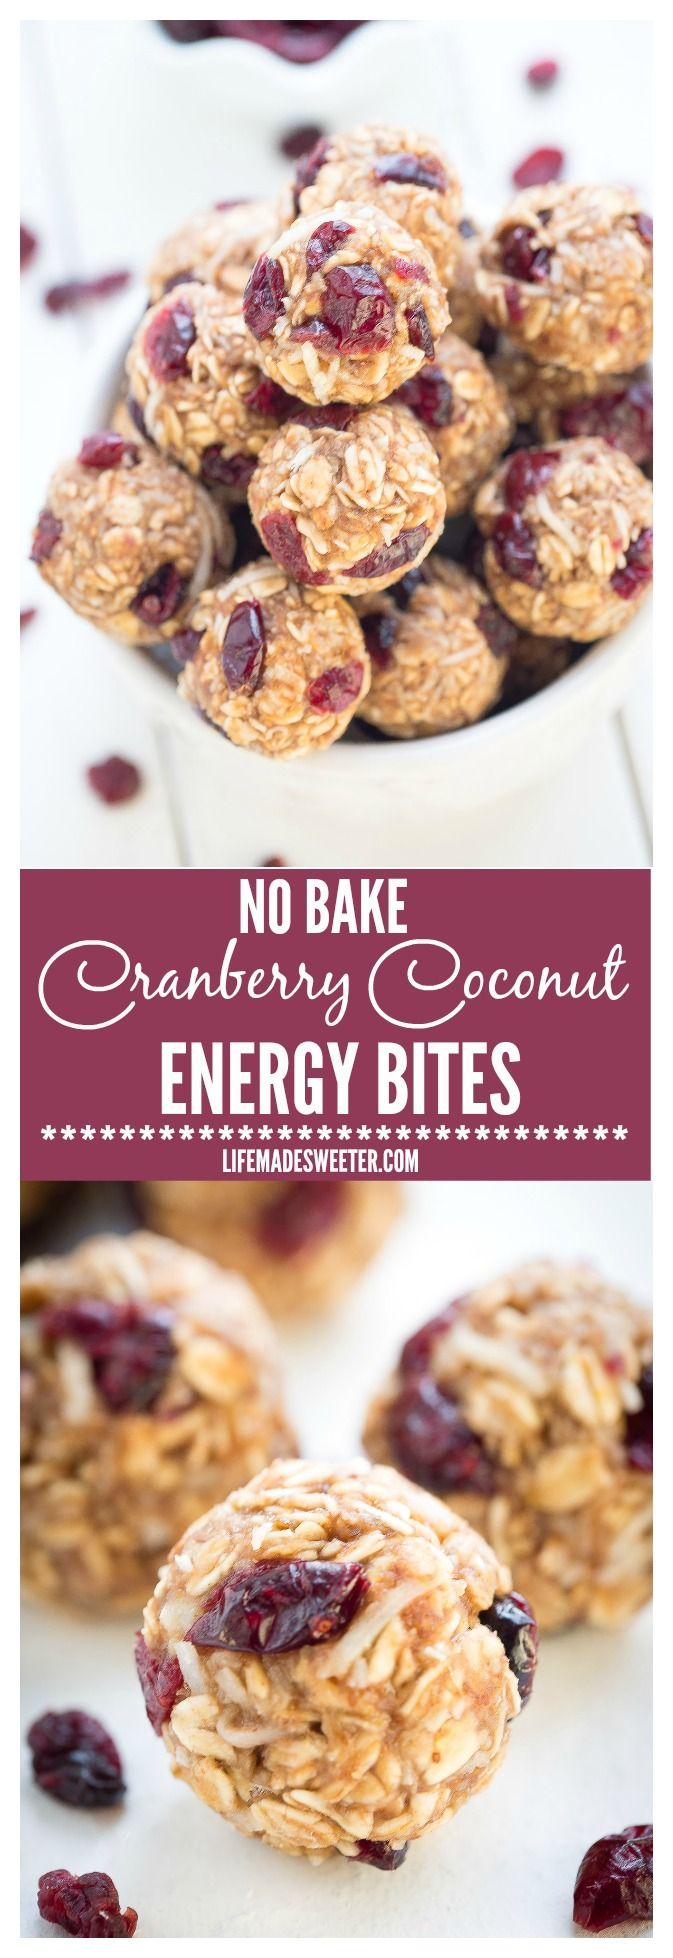 No Bake Cranberry Coconut Energy Bites make the perfect snack or healthy cookies on the go and are so easy to make and customize.  They make a great gluten free snack option with NO added REFINED sugar.